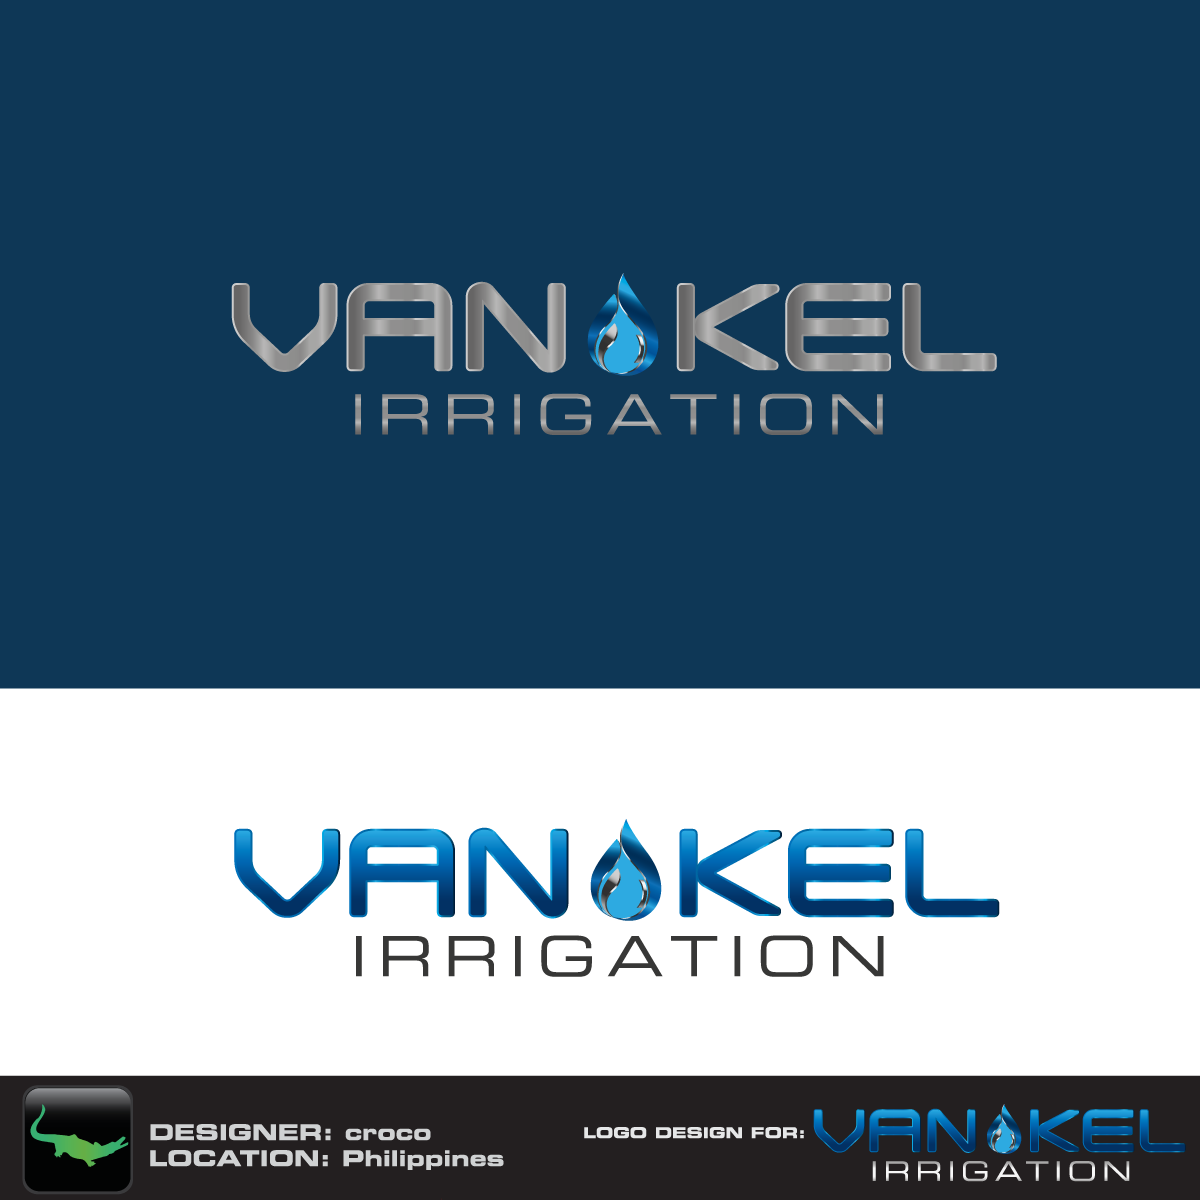 Logo Design by rockin - Entry No. 177 in the Logo Design Contest Van-Kel Irrigation Logo Design.